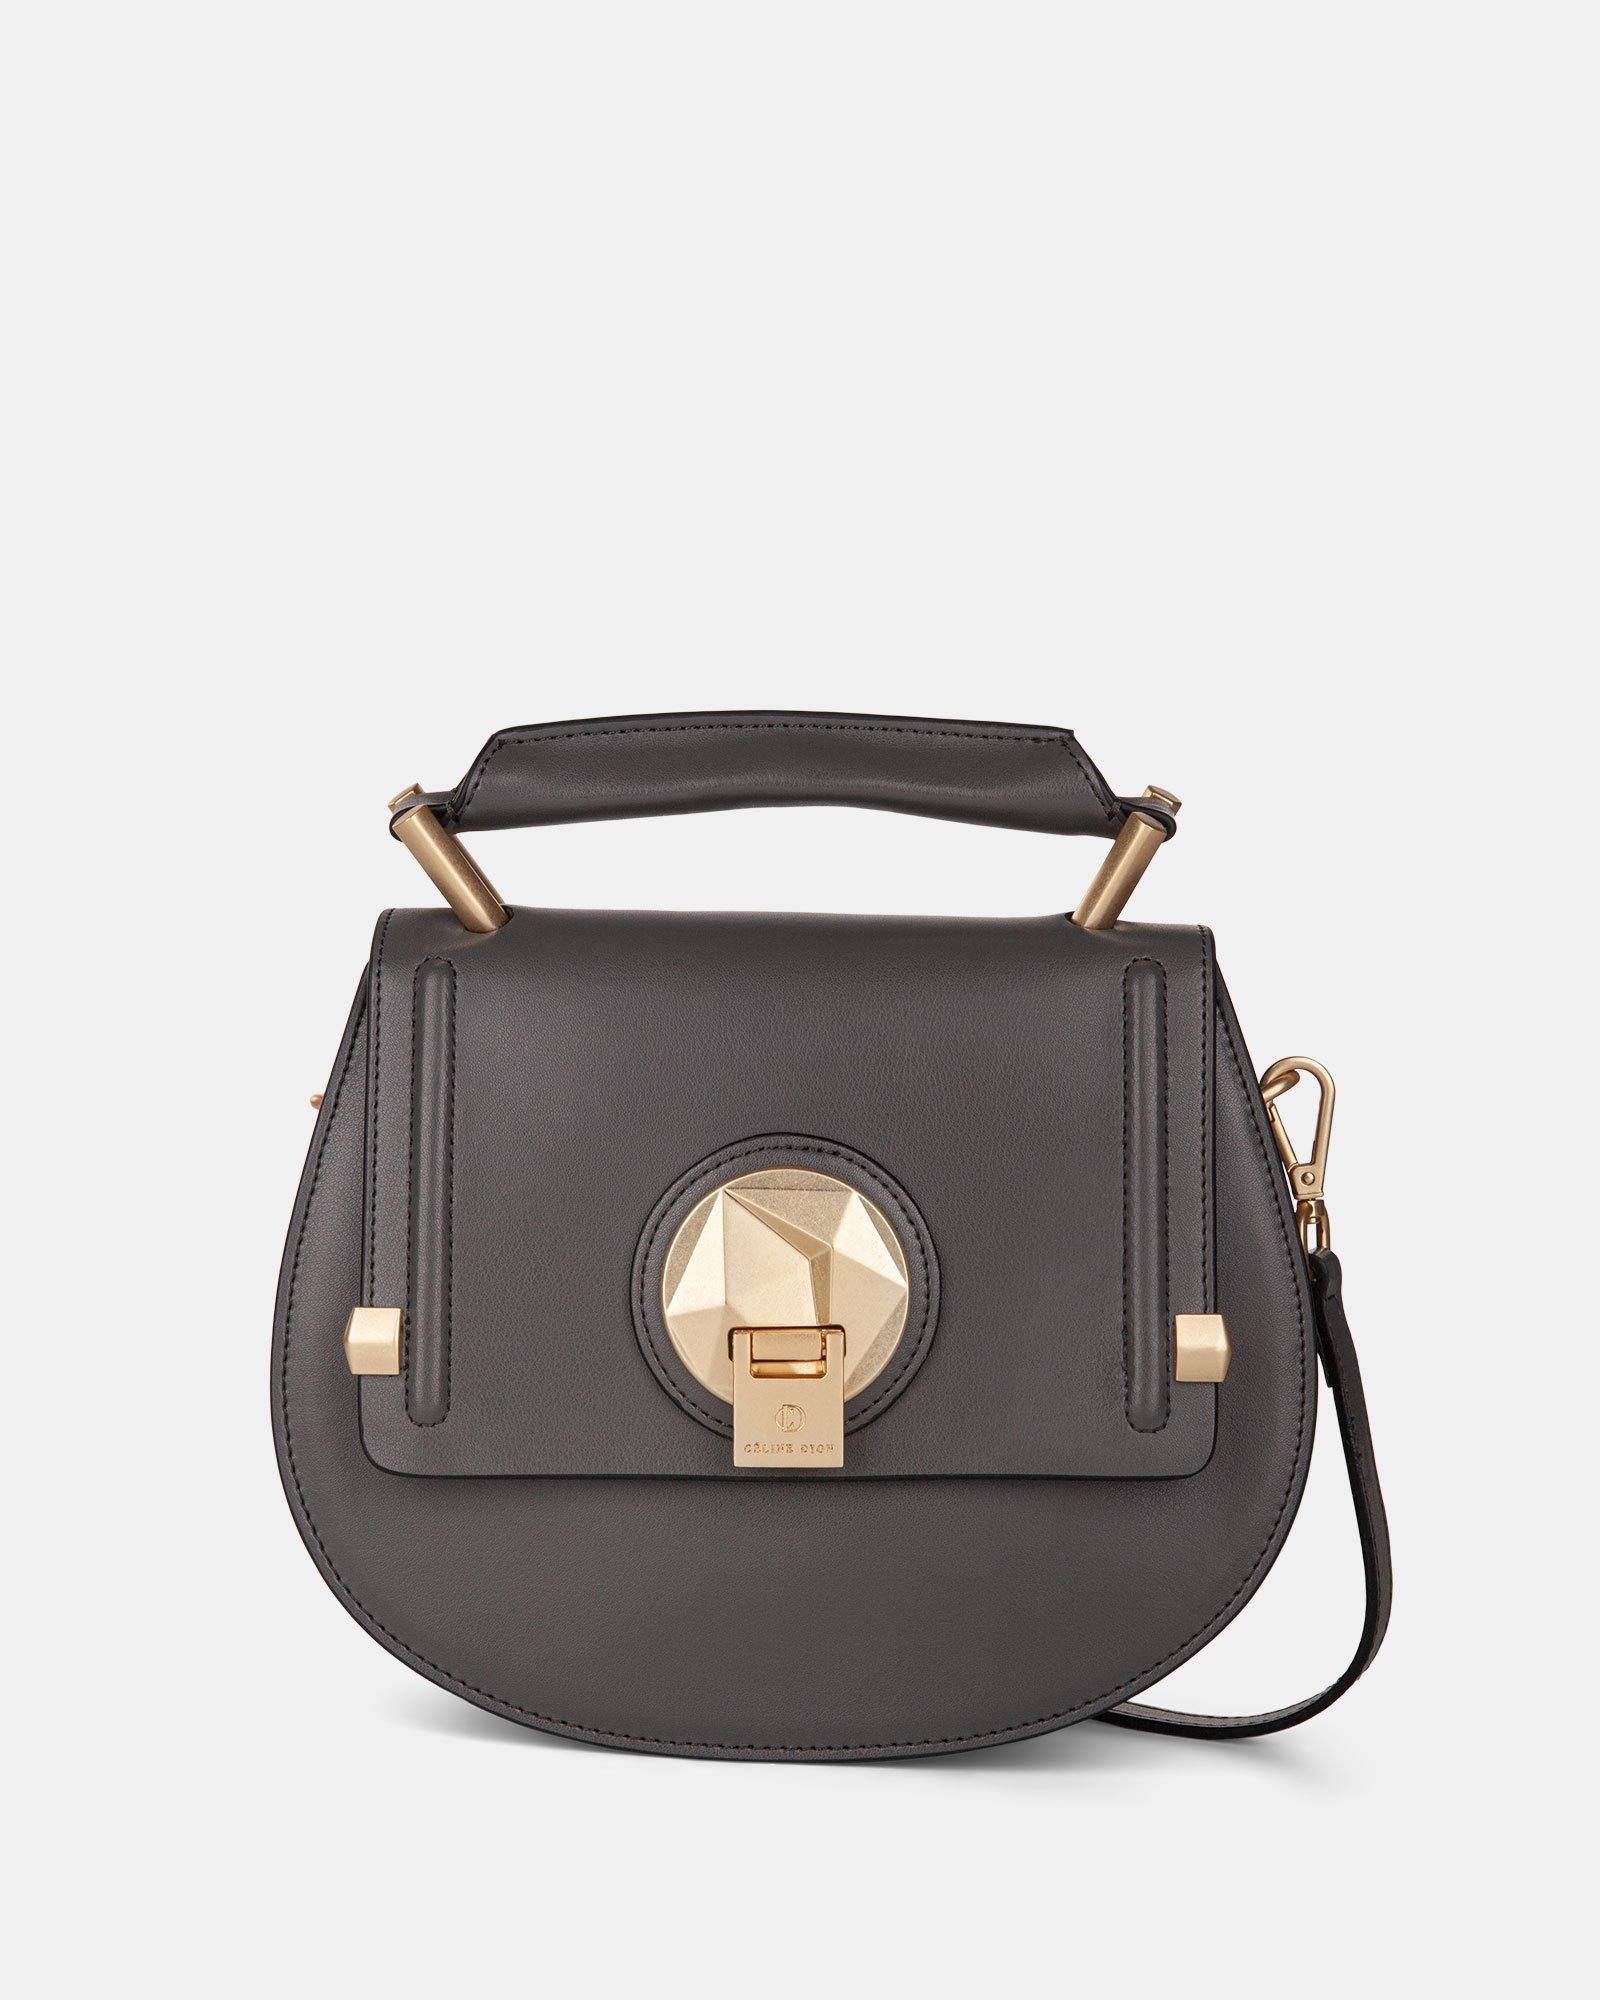 OCTAVE- LEATHER HANDLE BAG with Removable and adjustable strap - GREY - Céline Dion - Zoom